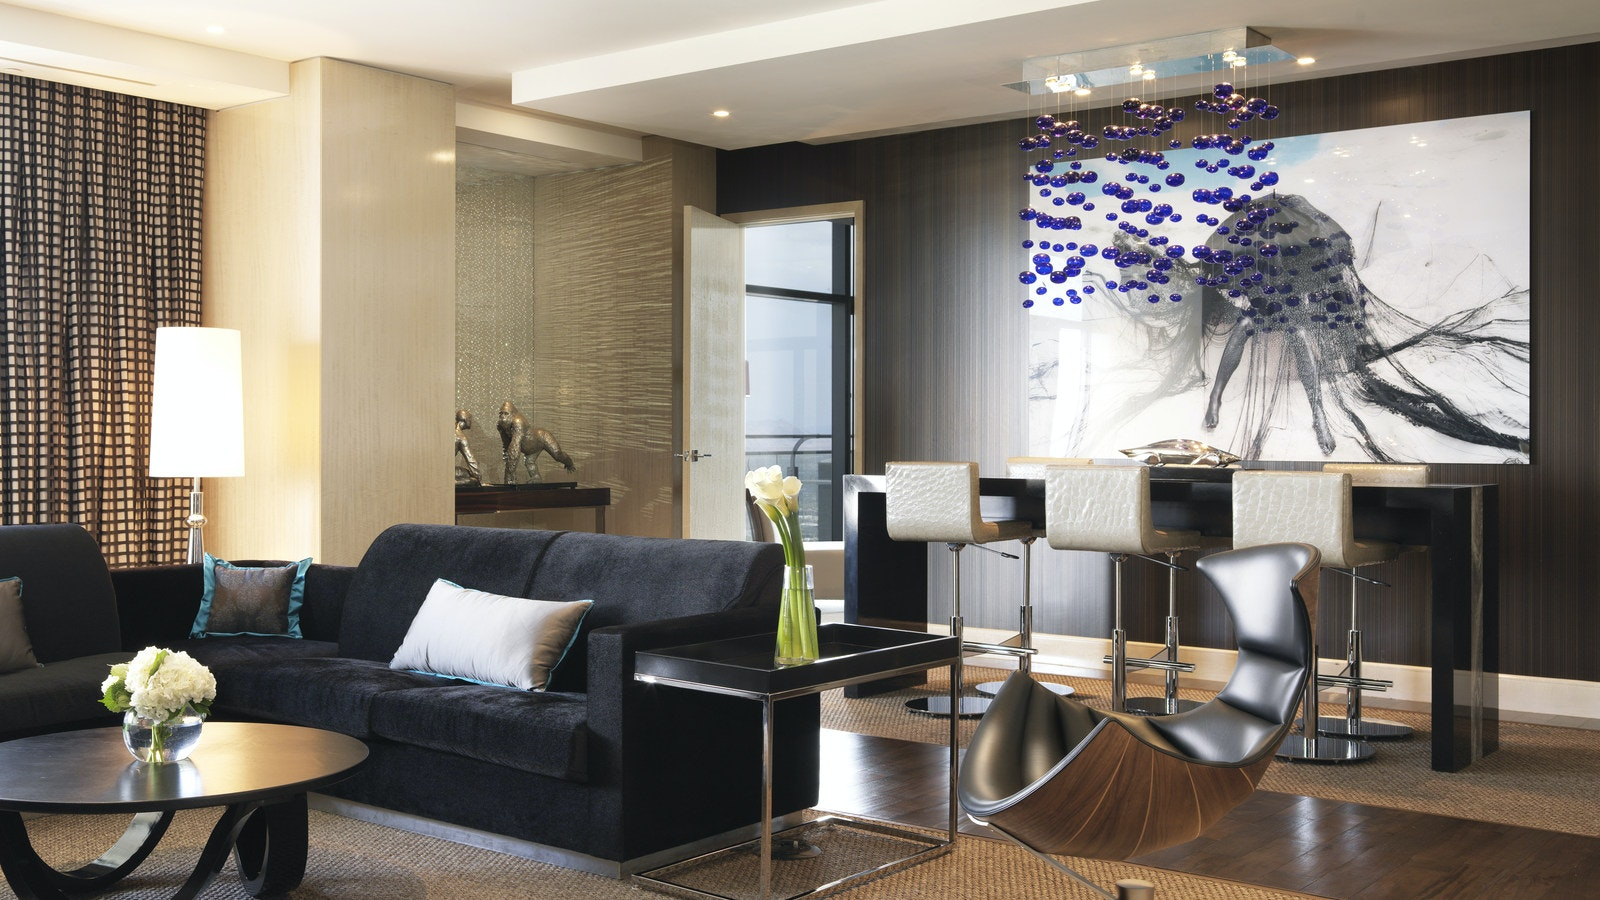 Two Bedroom Chelsea Penthouse 3 Beds The Cosmopolitan Of Las Vegas Exclus